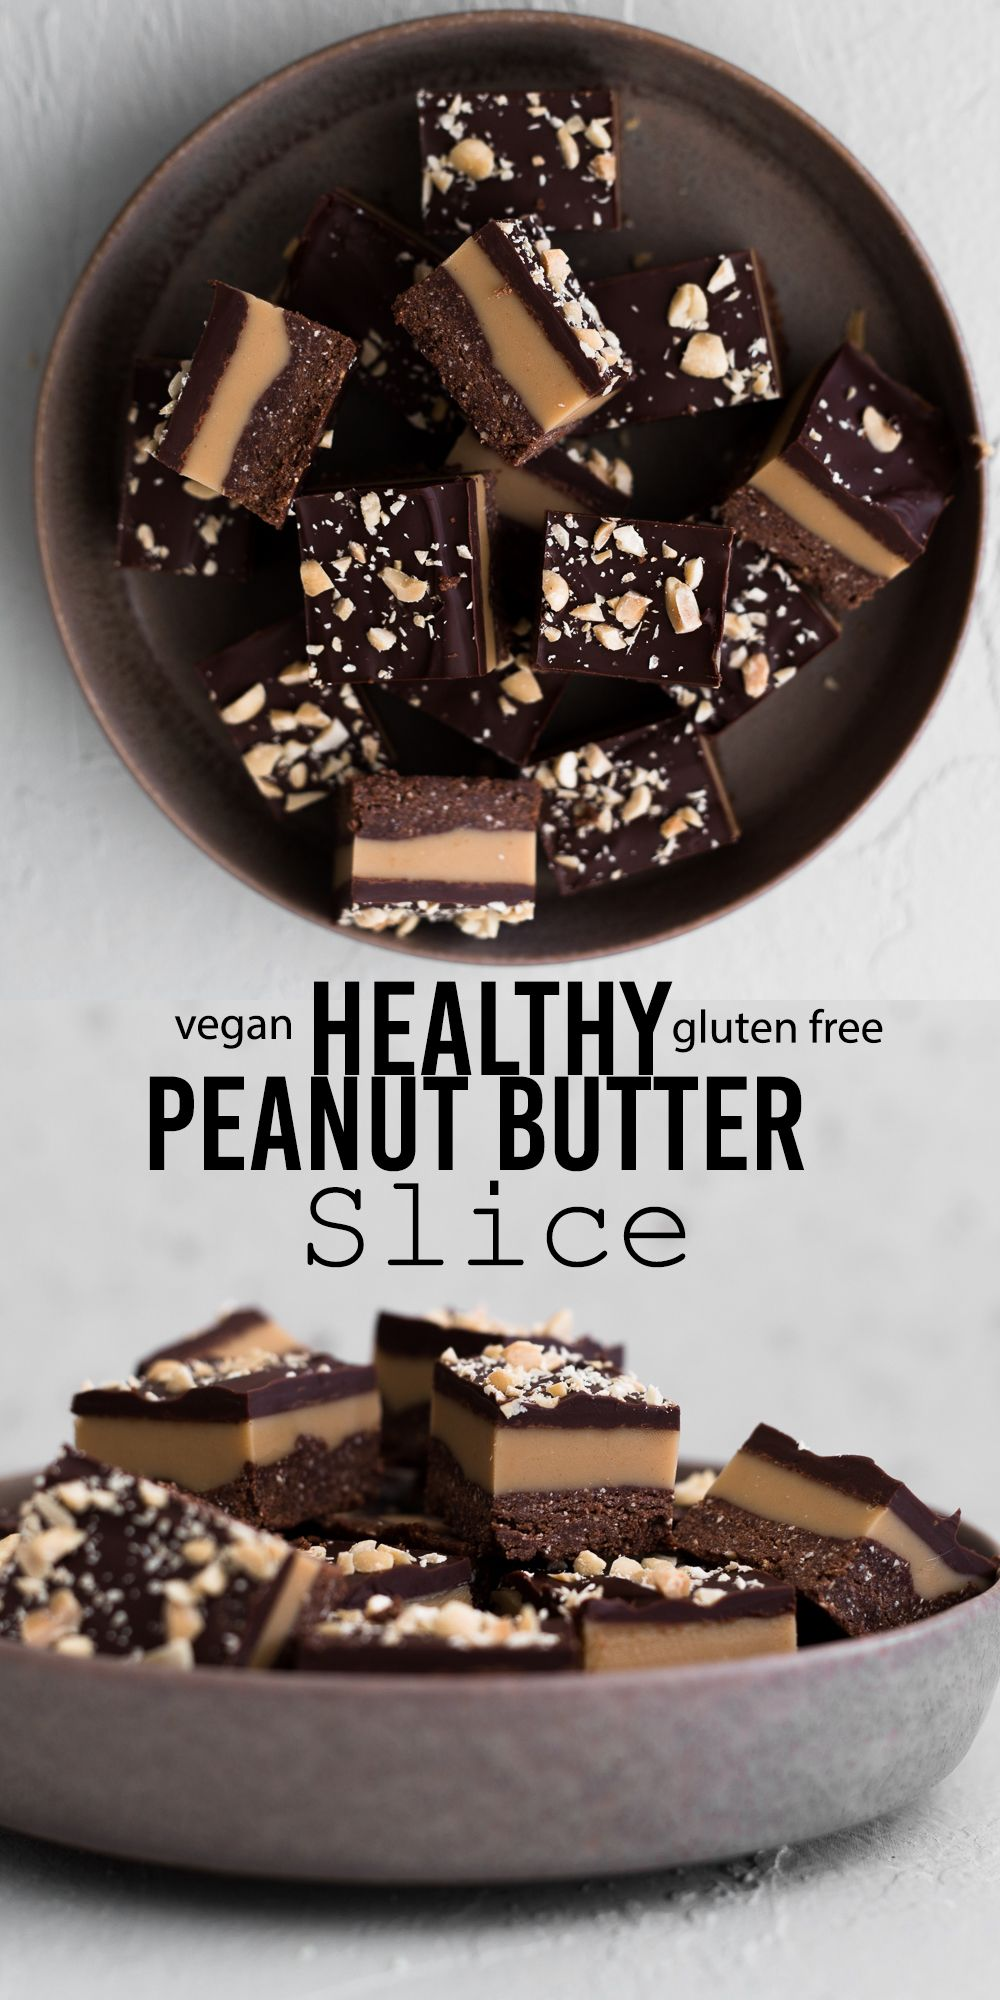 A delicious no-bake Vegan Peanut Butter Slice made with Desiccated Coconut, Peanut Butter, Dark Chocolate and other good-for-you ingredients! #vegan #glutenfree #chocolate #peanutbutter #healthy #raw #simple #nobake #simple #nocook #natural #brownies #bars #sliceandbakecookies